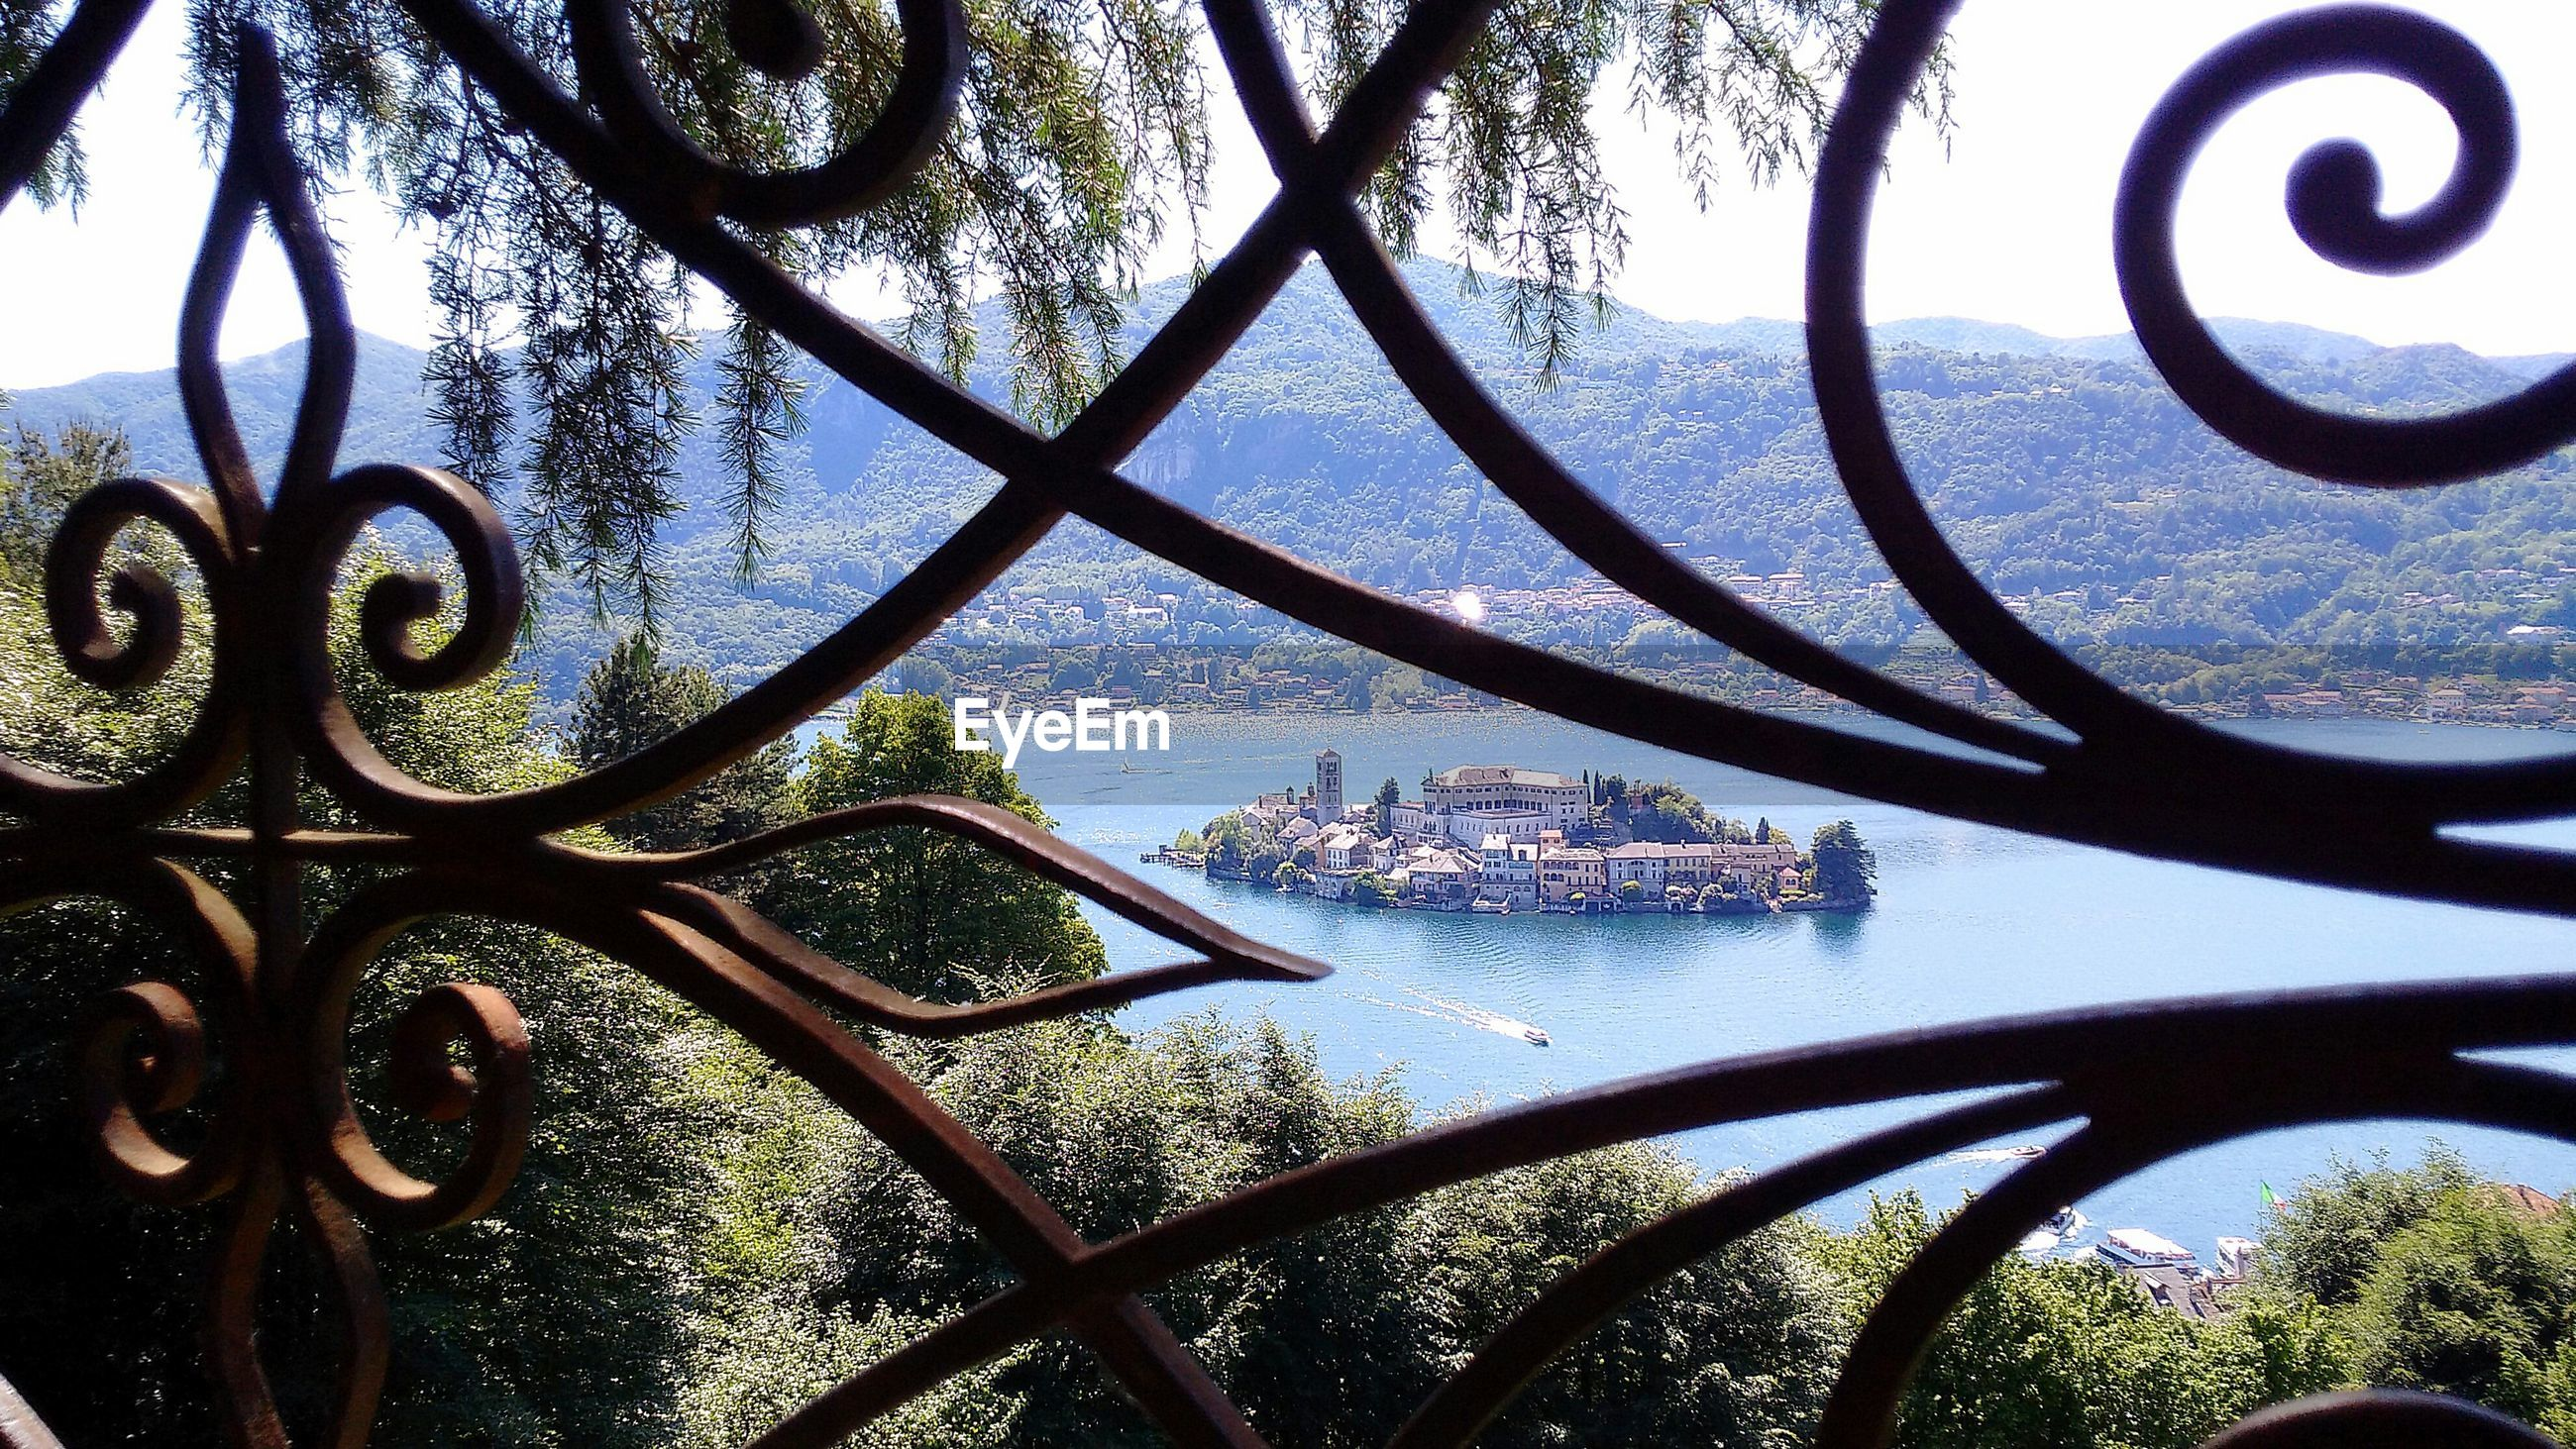 Isola san giulio seen through window of sacro monte di orta